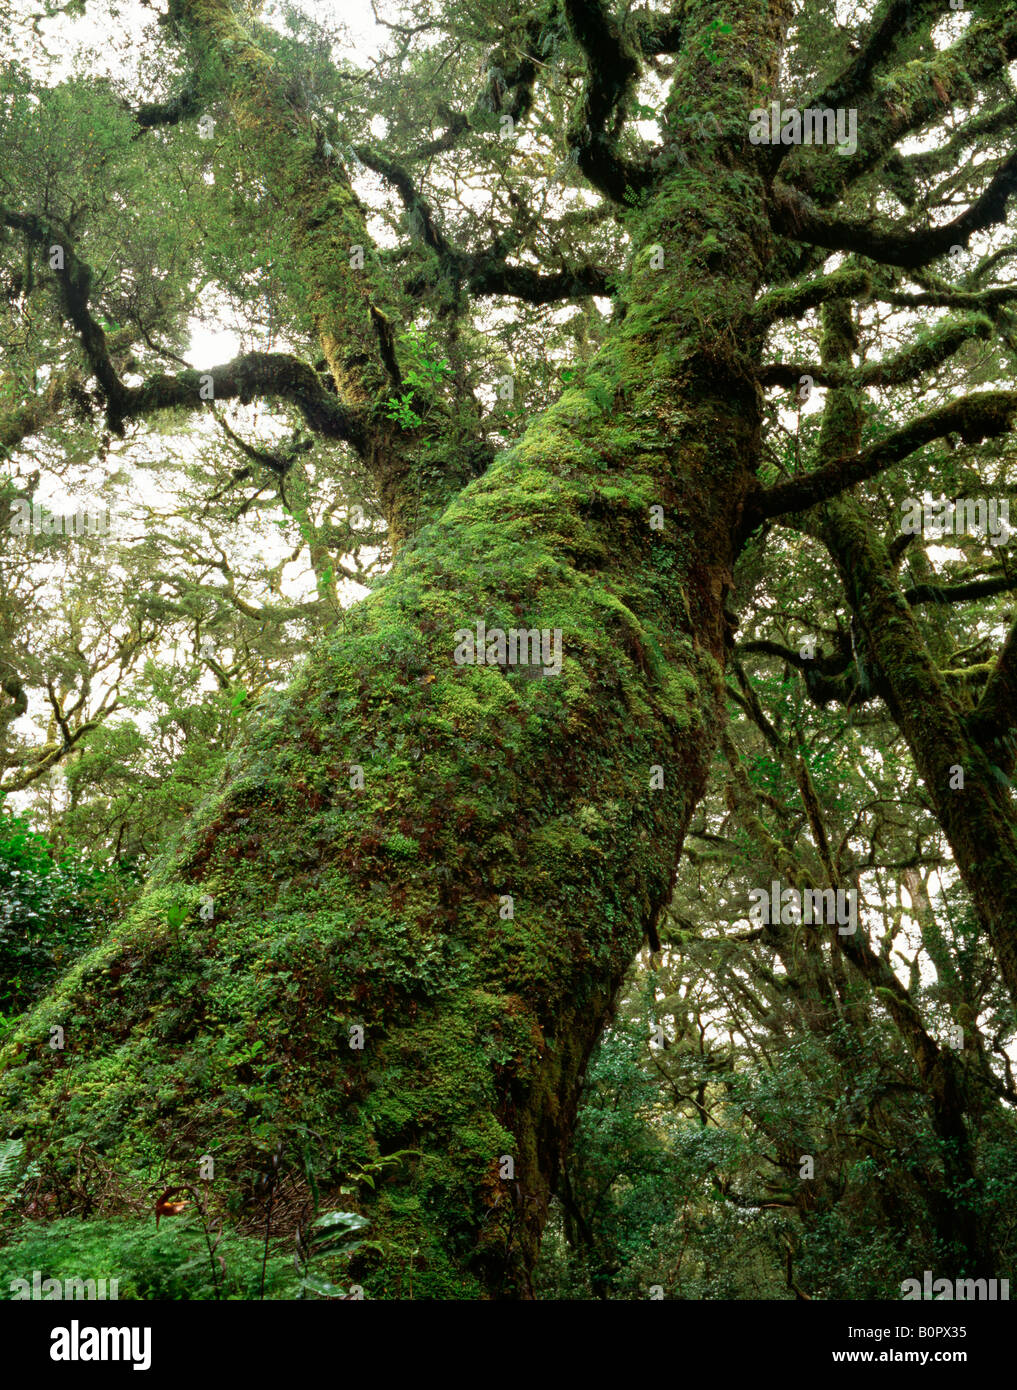 Ent like Silver Beech (Nothofagus menziesii) on the Hollyford Track, Fiordland National Park, New Zealand - Stock Image